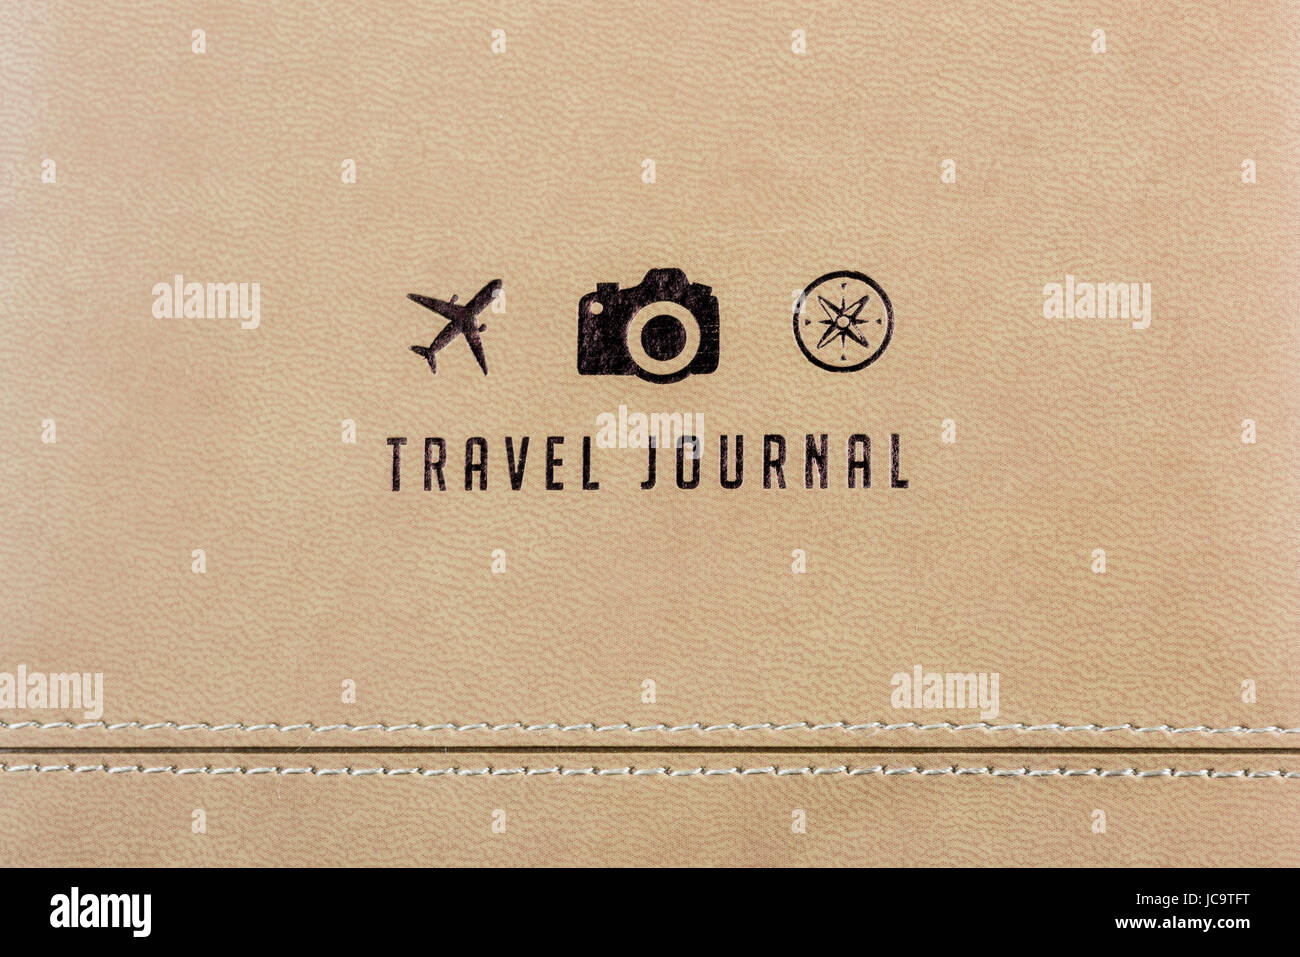 close up of a travel journal cover with 3 small logos a plane a